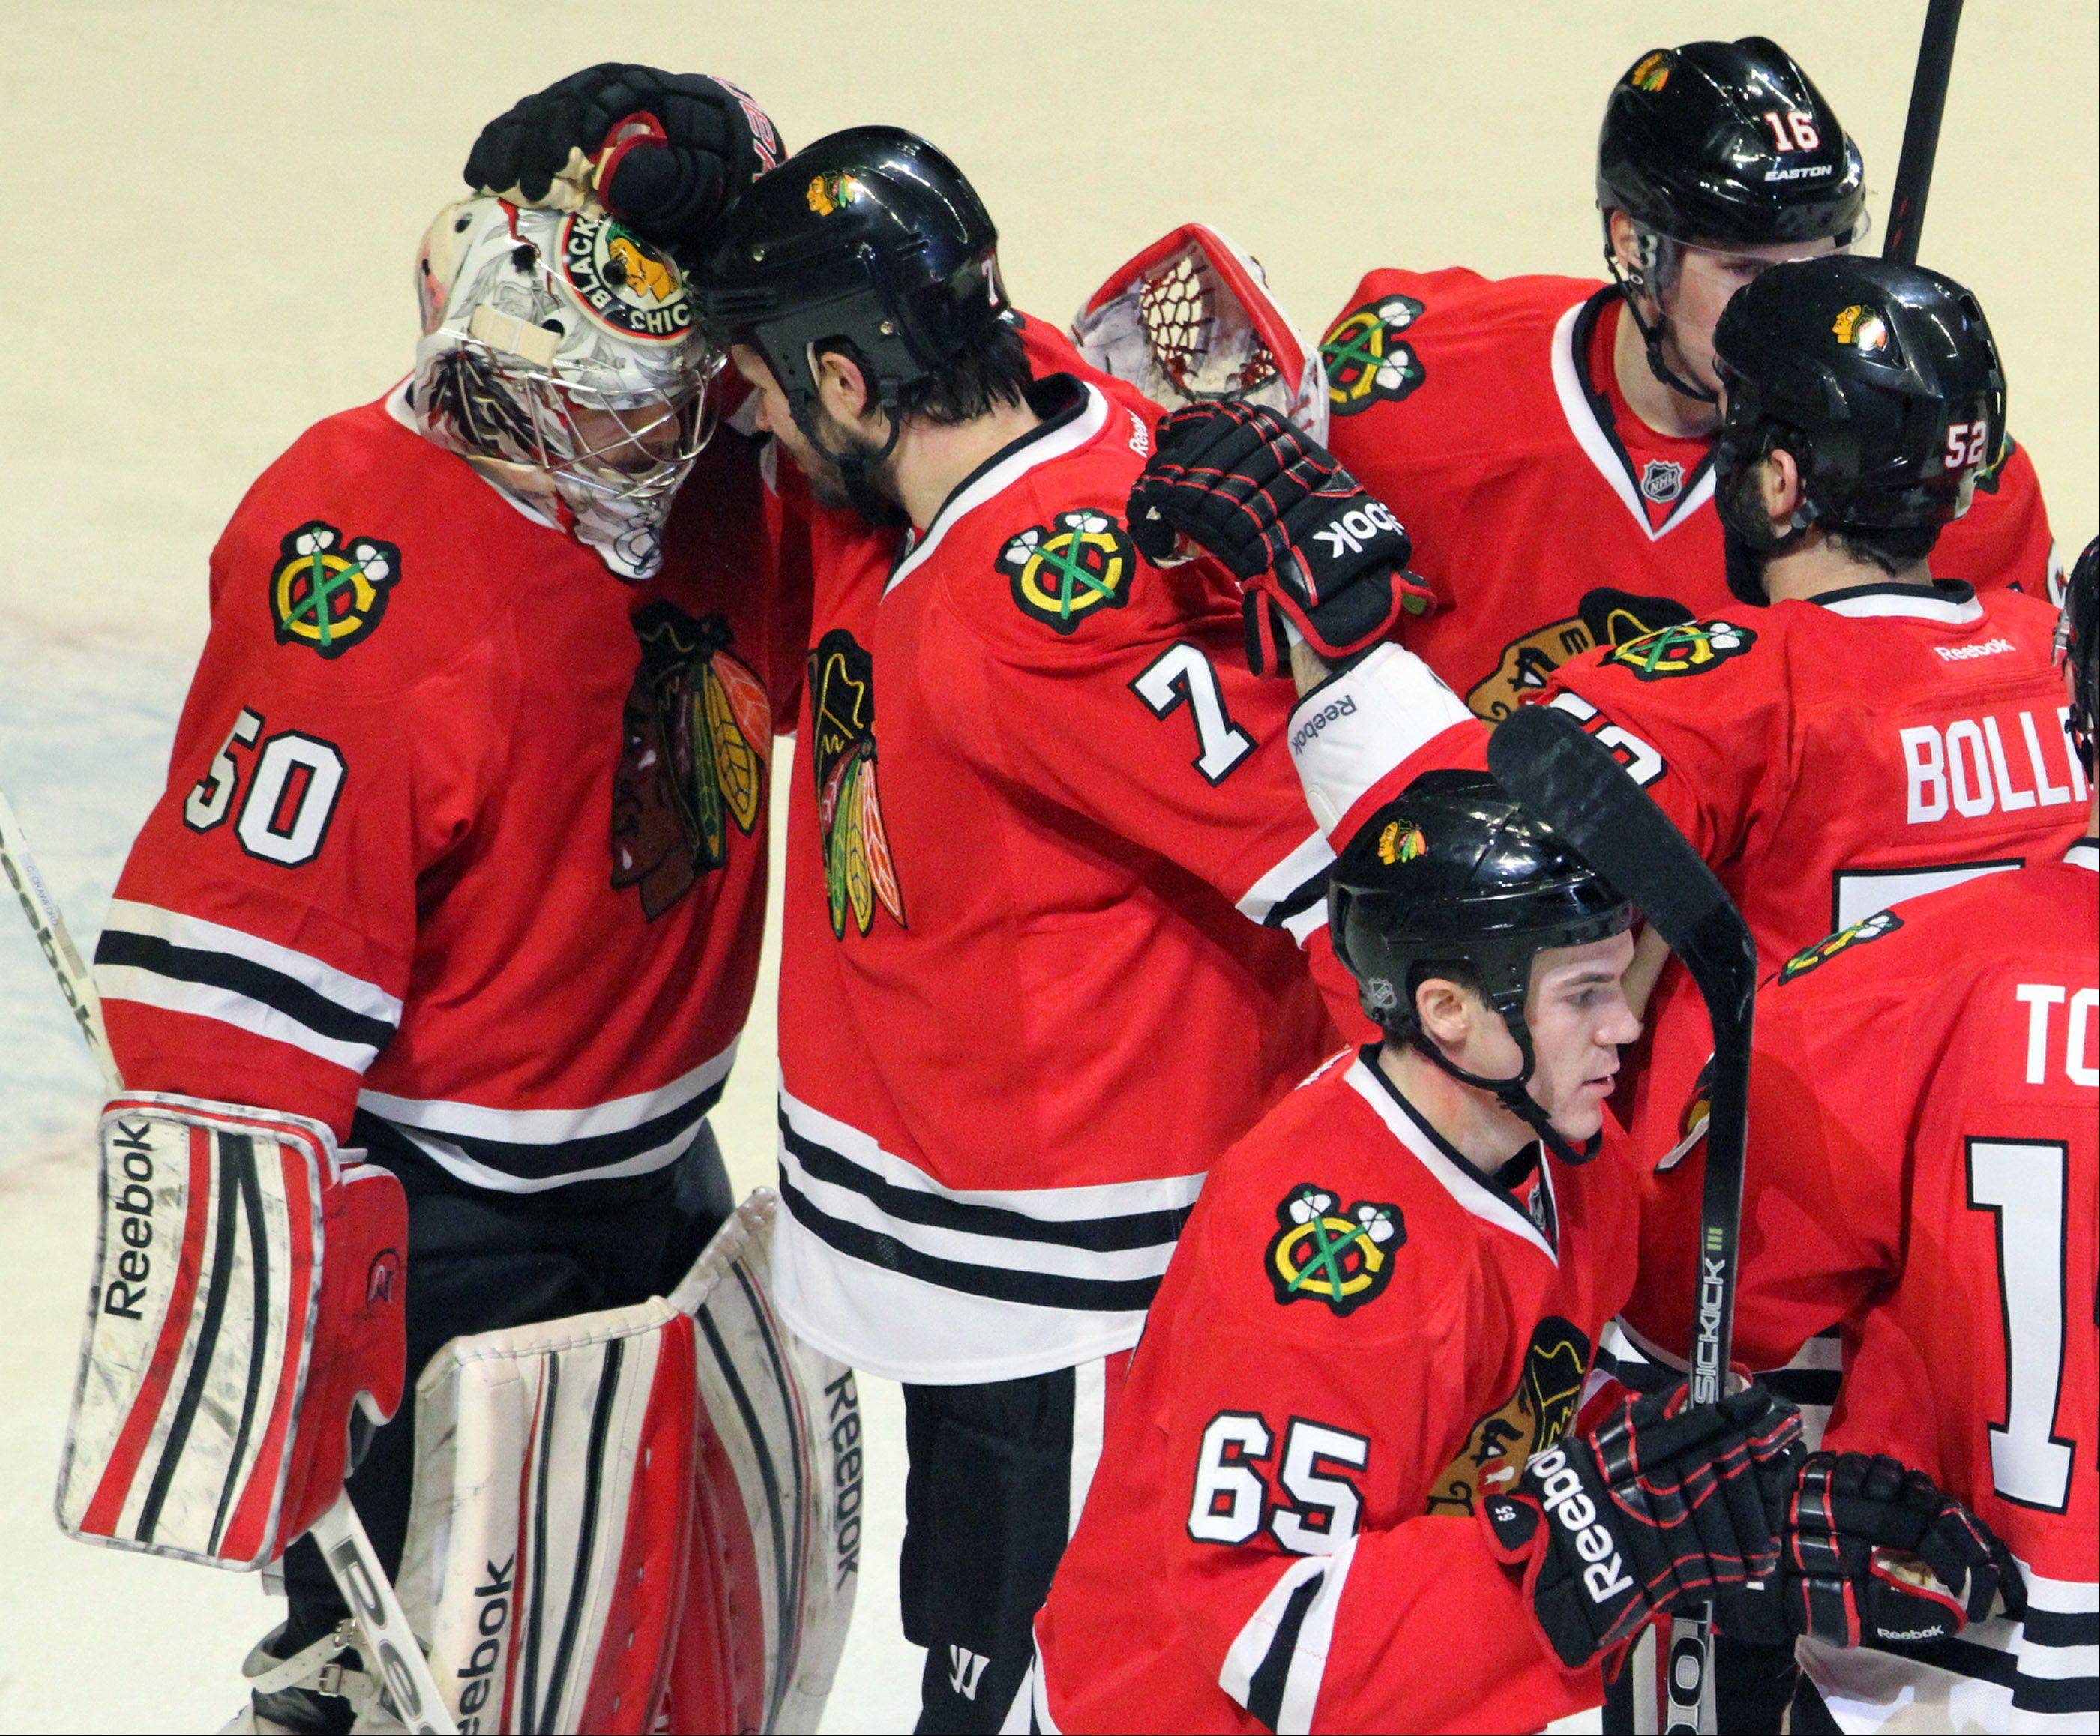 Victory a welcome sight for Hawks, fans